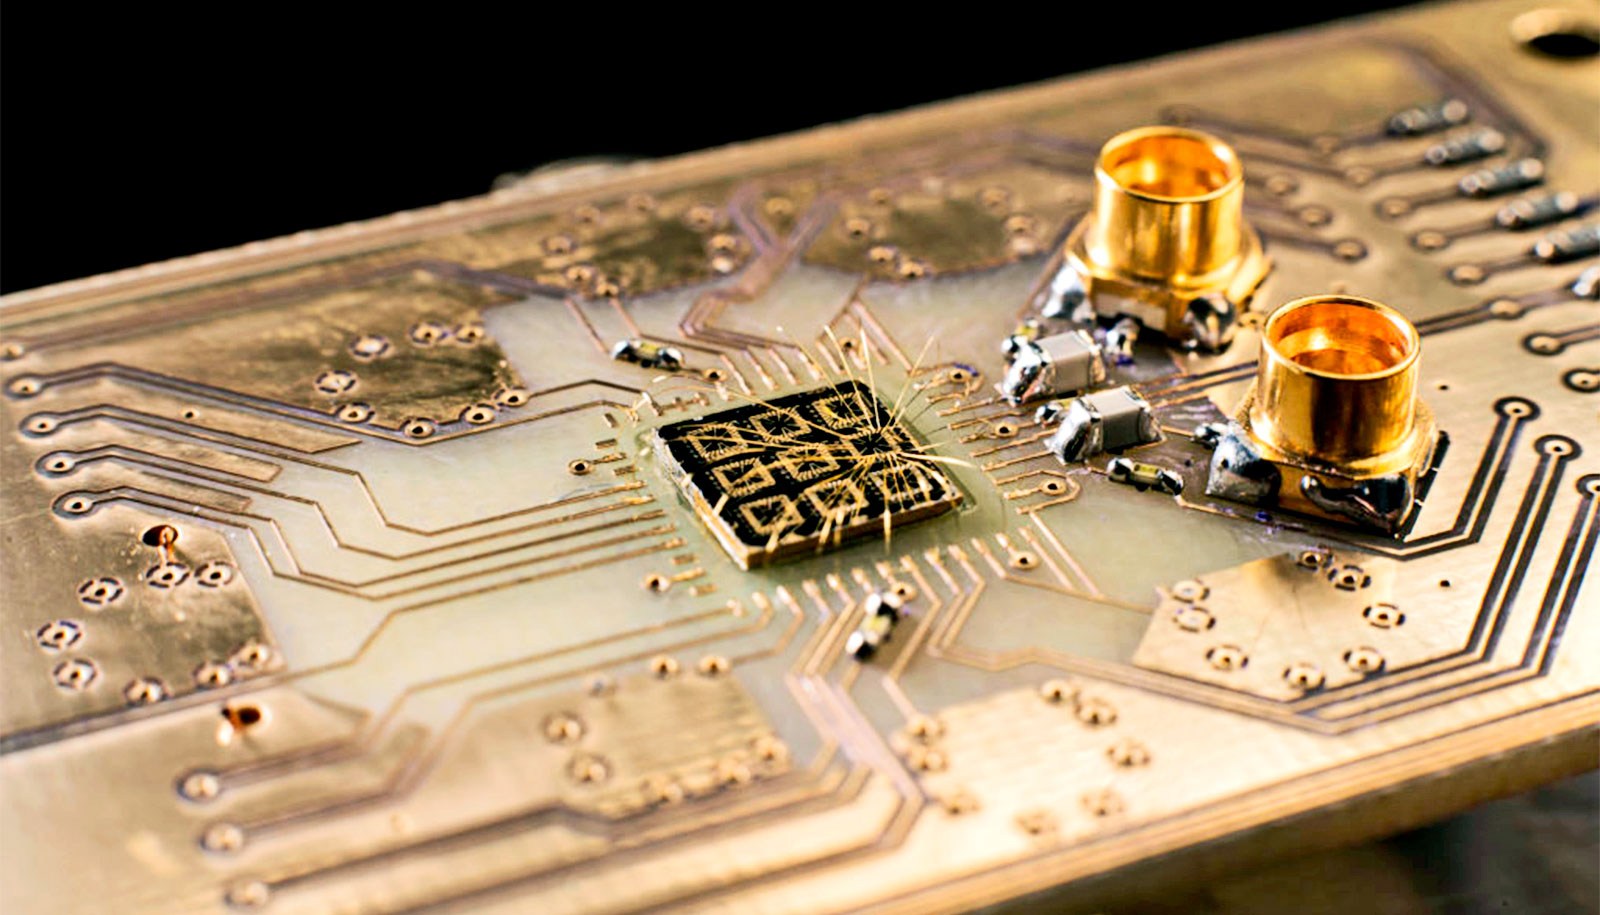 Electron switch may get us closer to quantum computers